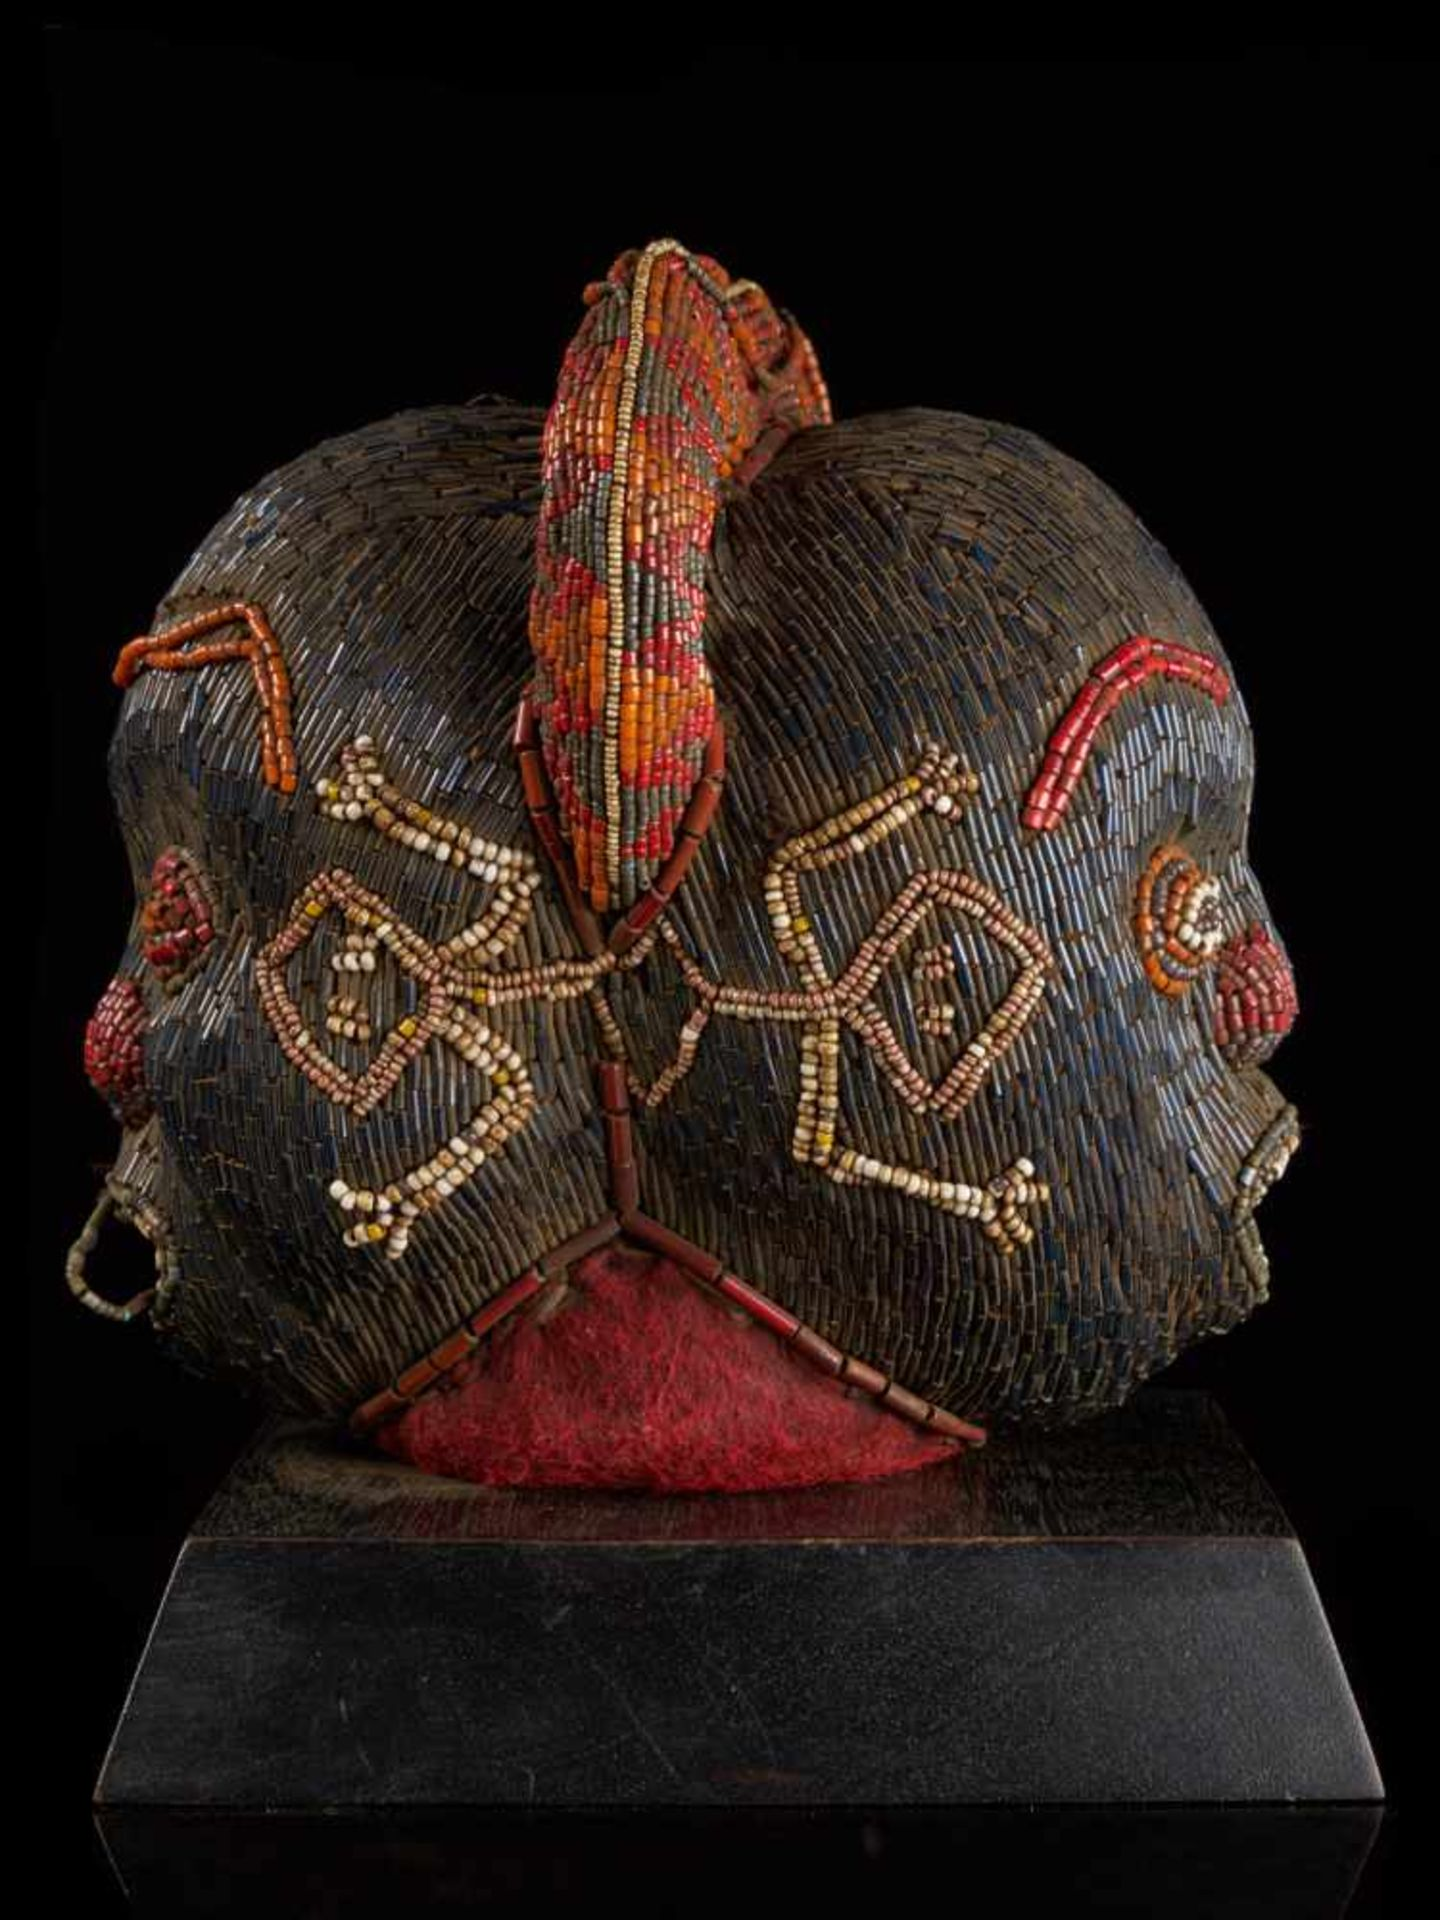 Beaded Janus Head Sculpture With Headdress - Tribal ArtThis beautiful two-faced head sculpture is - Bild 4 aus 6